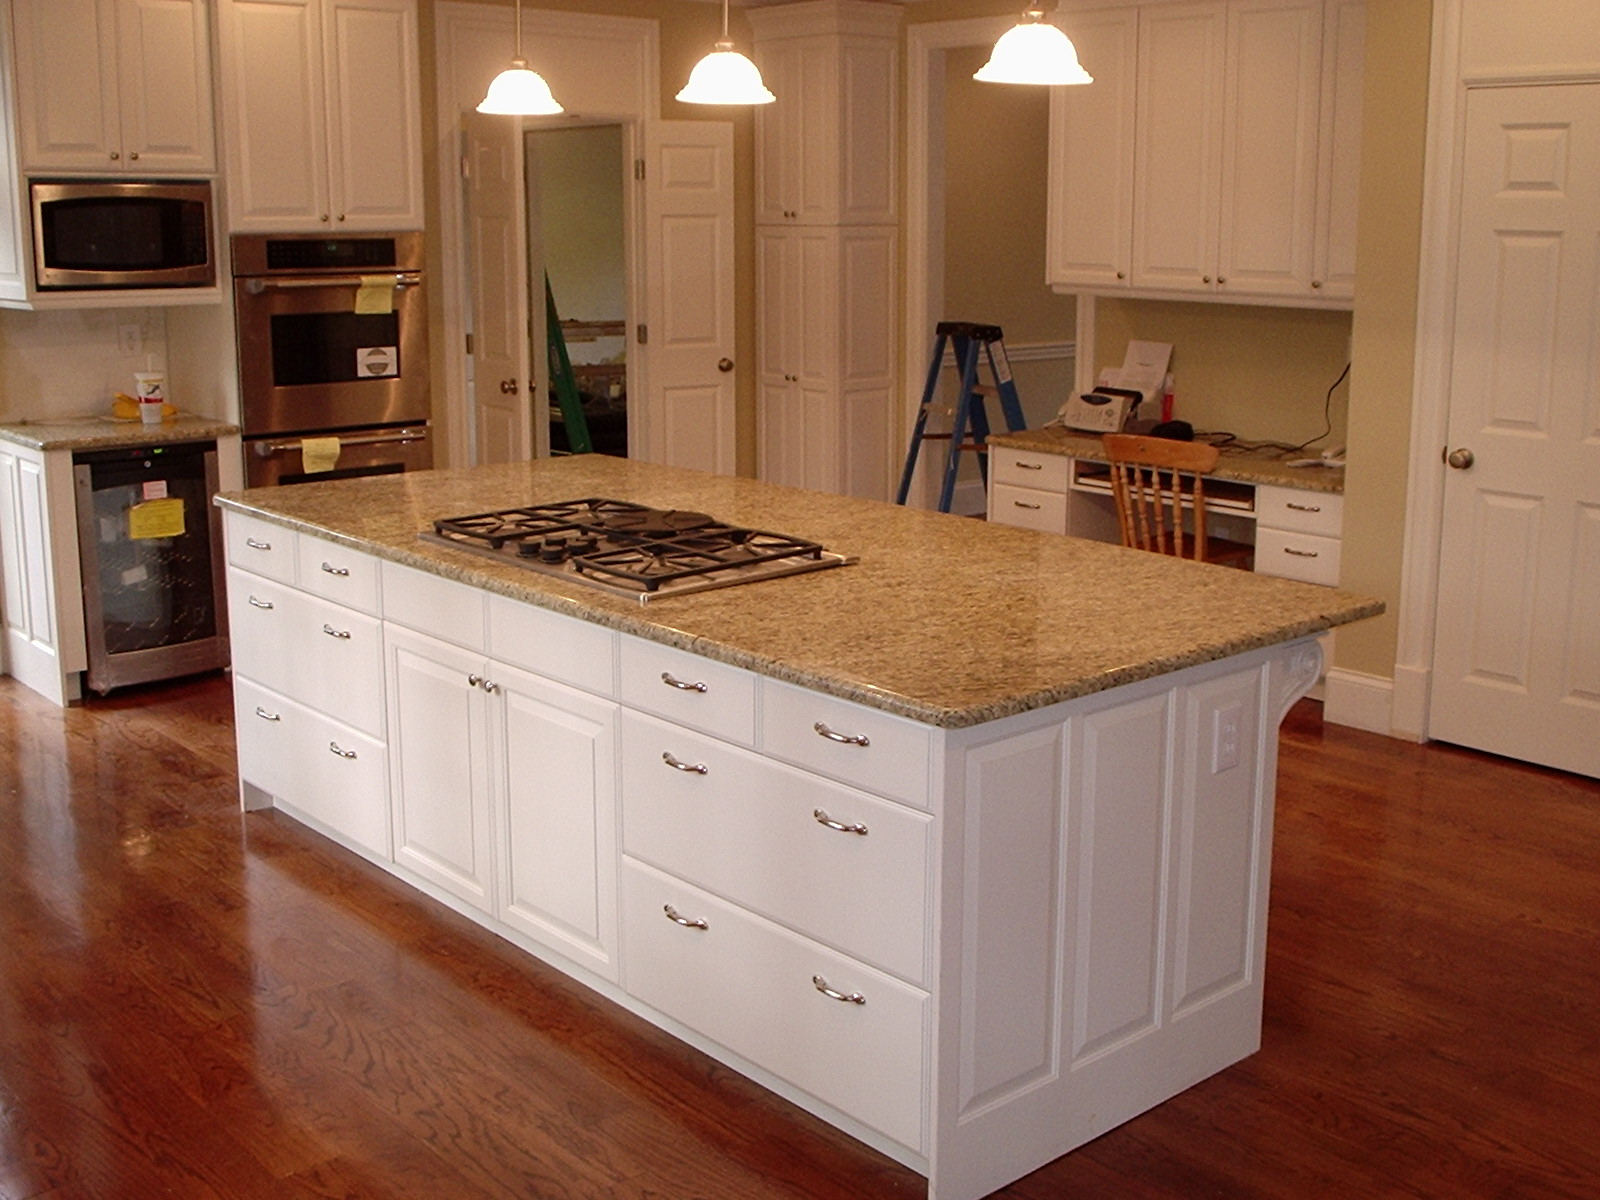 Kitchen Cabinet Plans | Dream House Experience